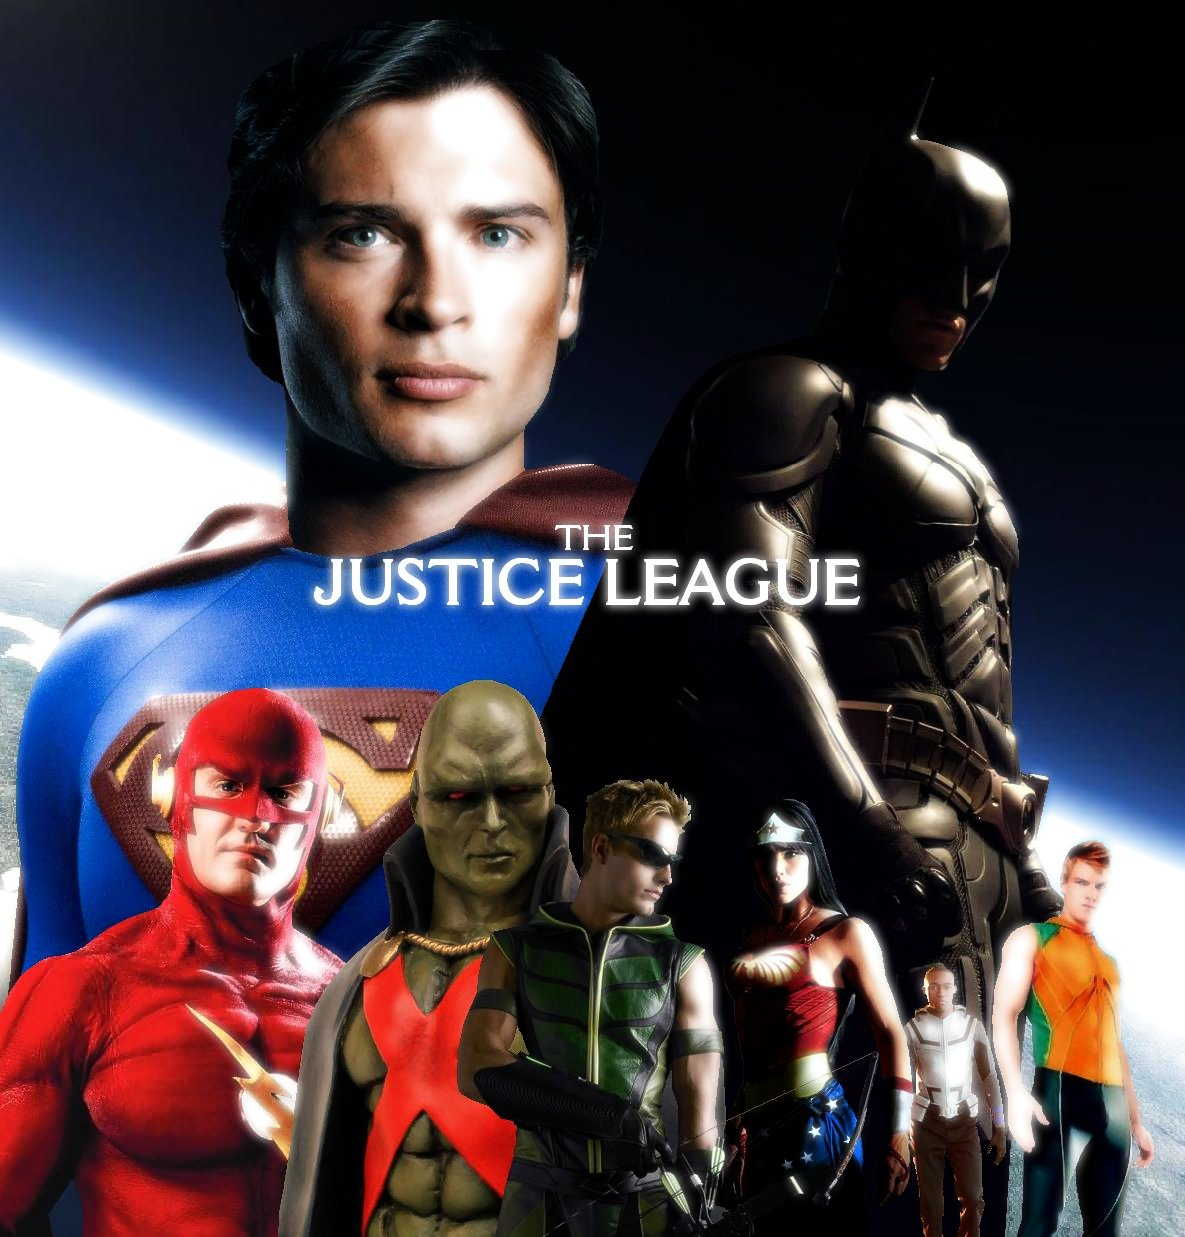 thejusticeleague.jpg